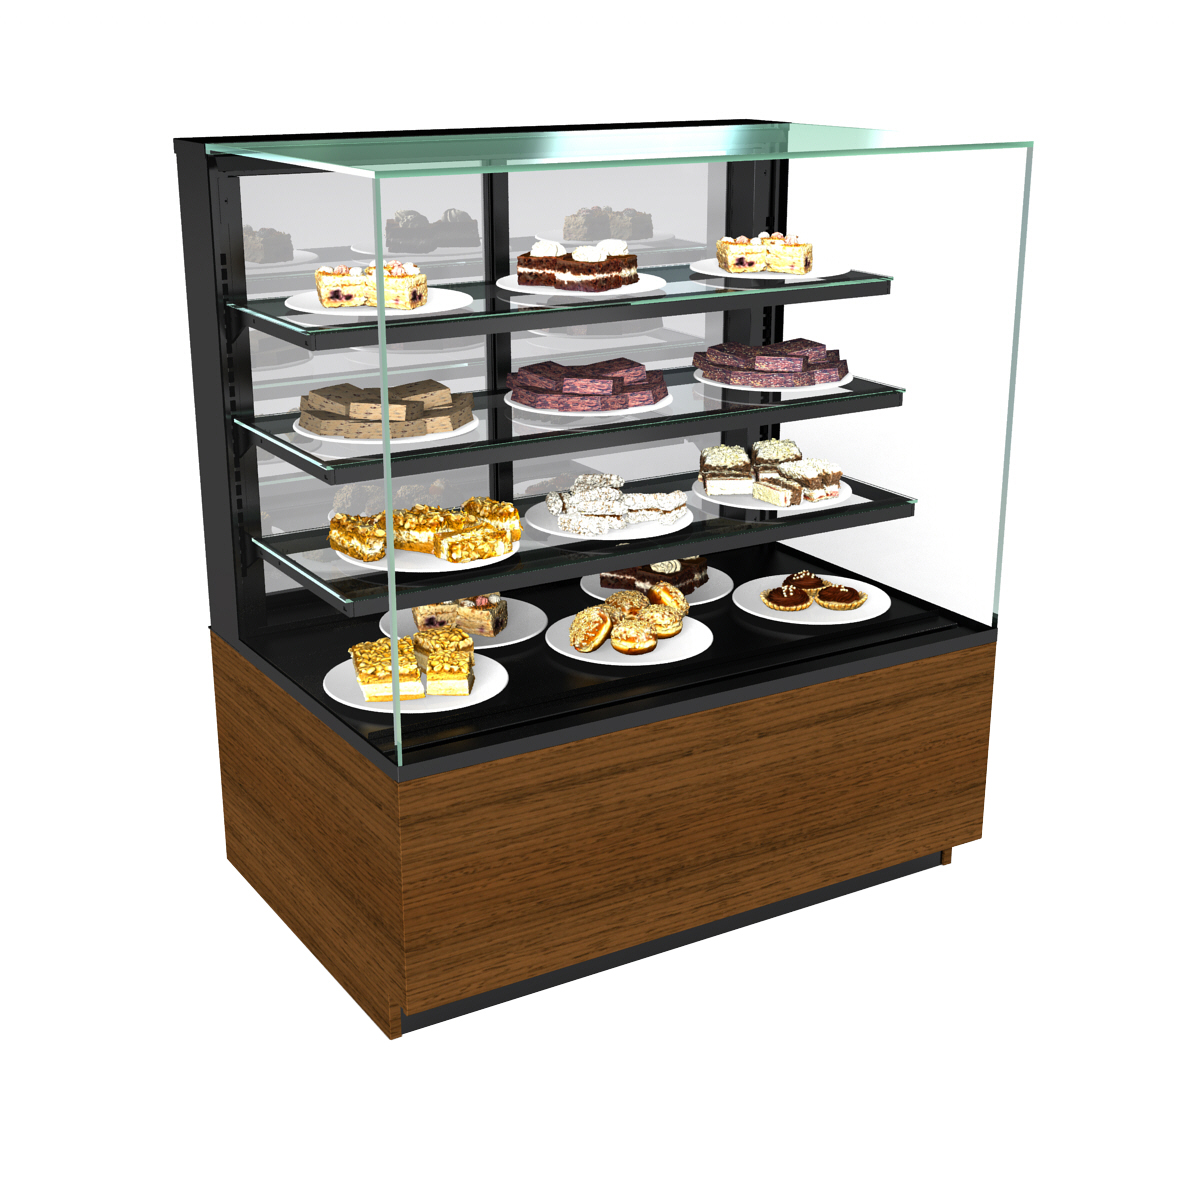 Structural Concepts NR4855DSV display case, non-refrigerated bakery